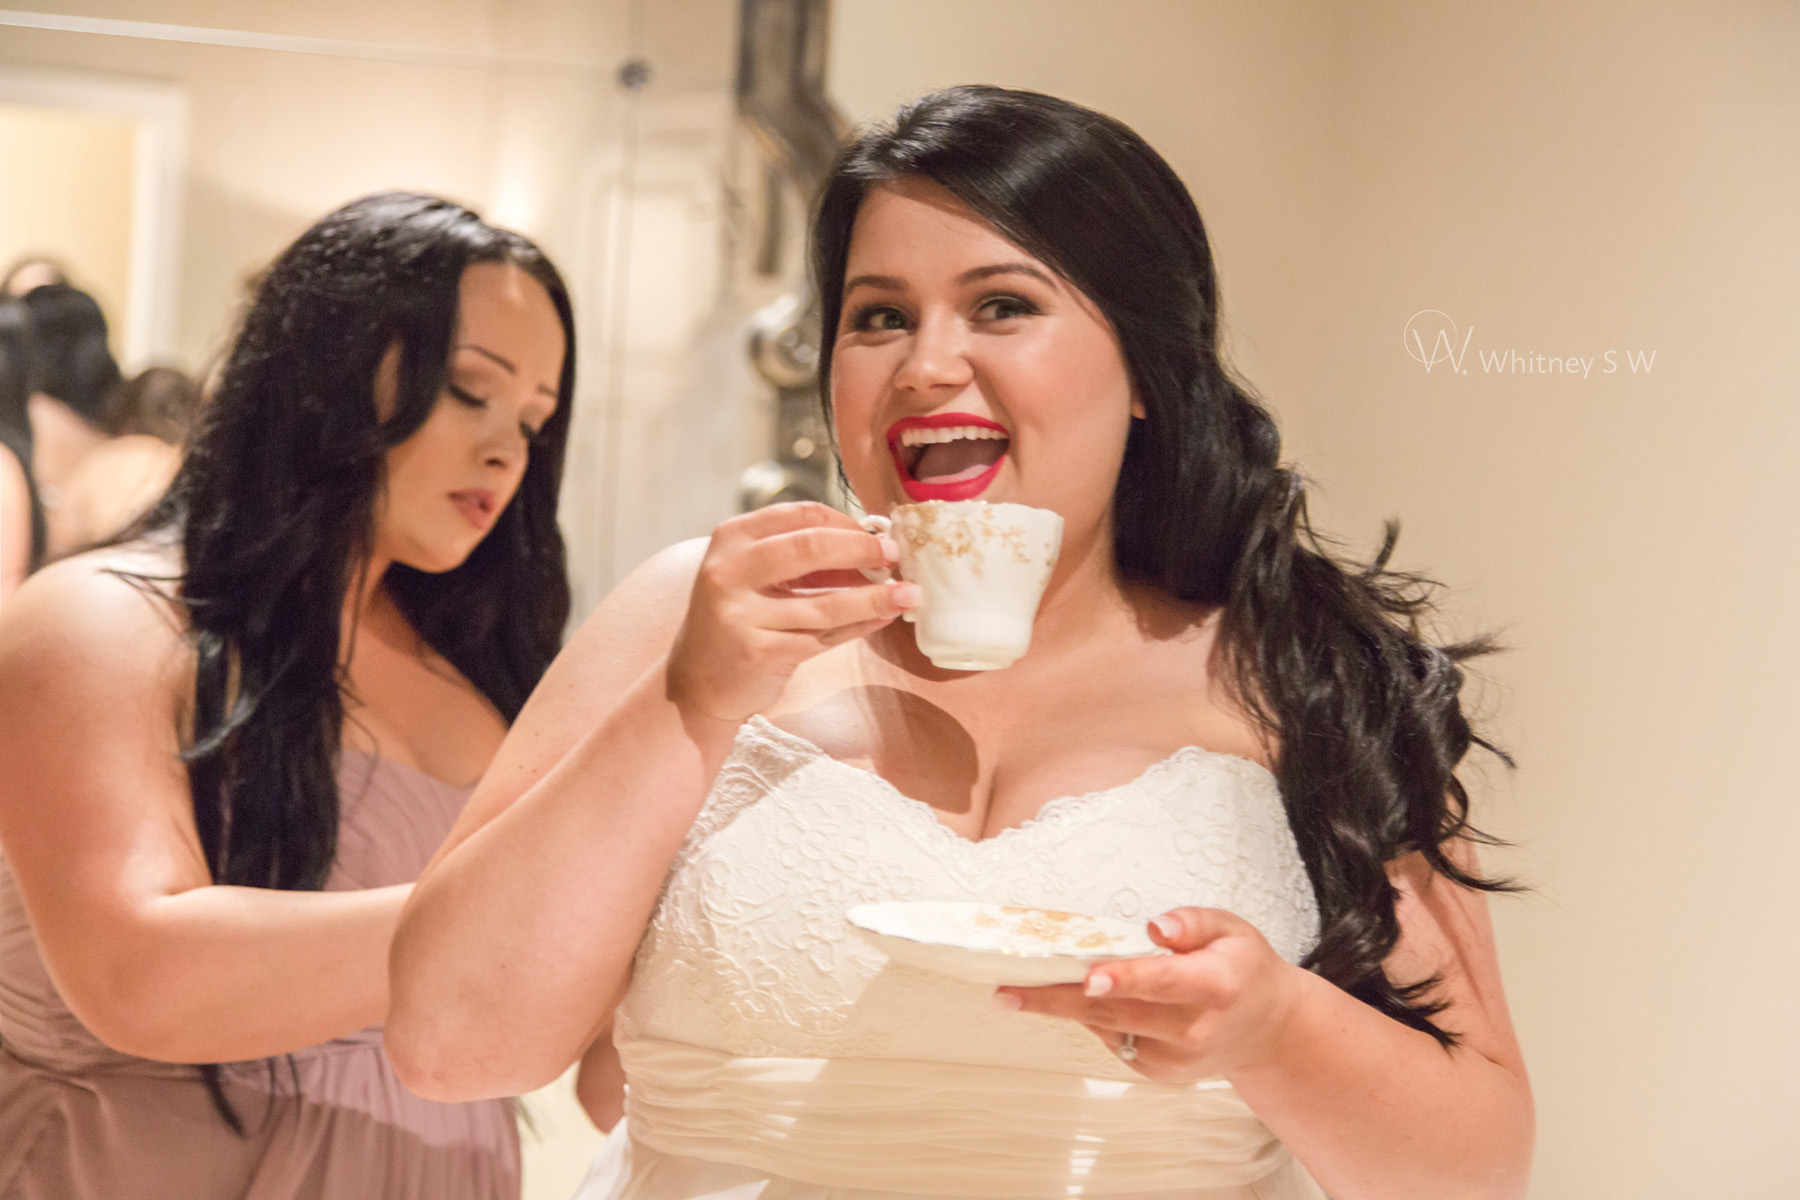 SimpsonFalinWedding_Photography by Whitney S Williams (69).jpg